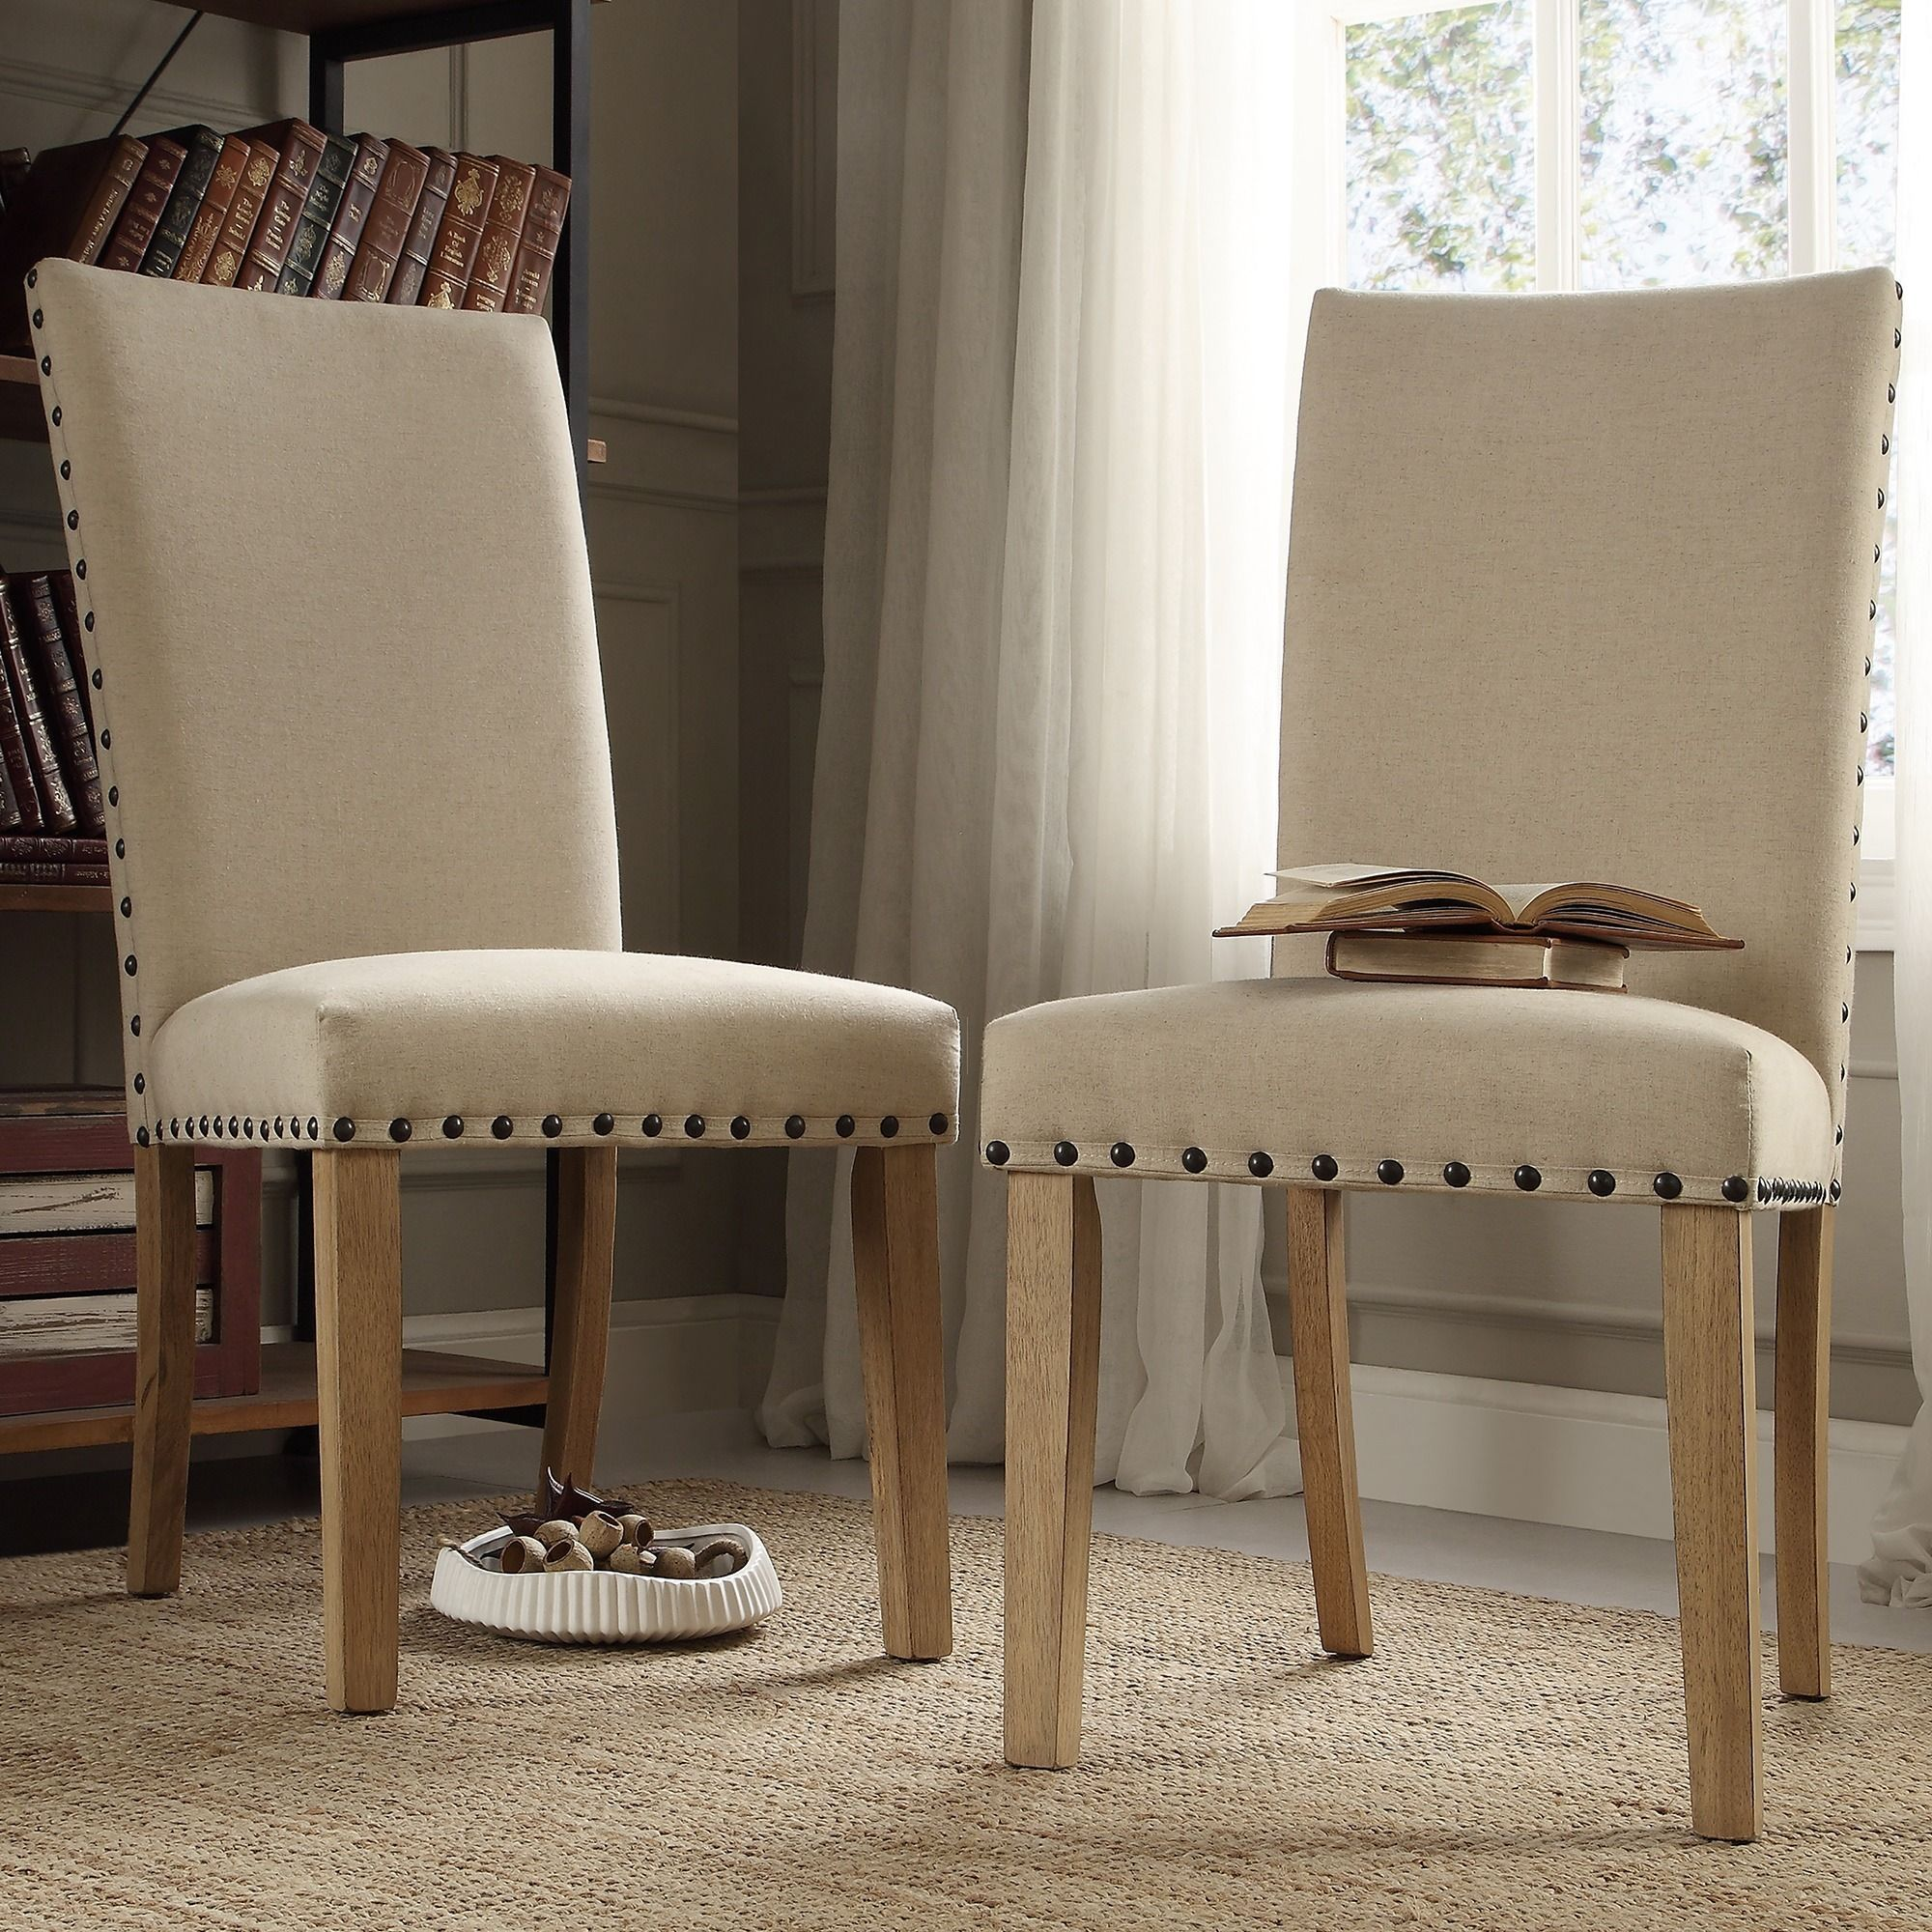 Exceptionnel INSPIRE Q Aberdeen Beige Upholstered Nail Head Parson Chair (Set Of 2)    Overstock™ Shopping   Great Deals On INSPIRE Q Dining Chairs